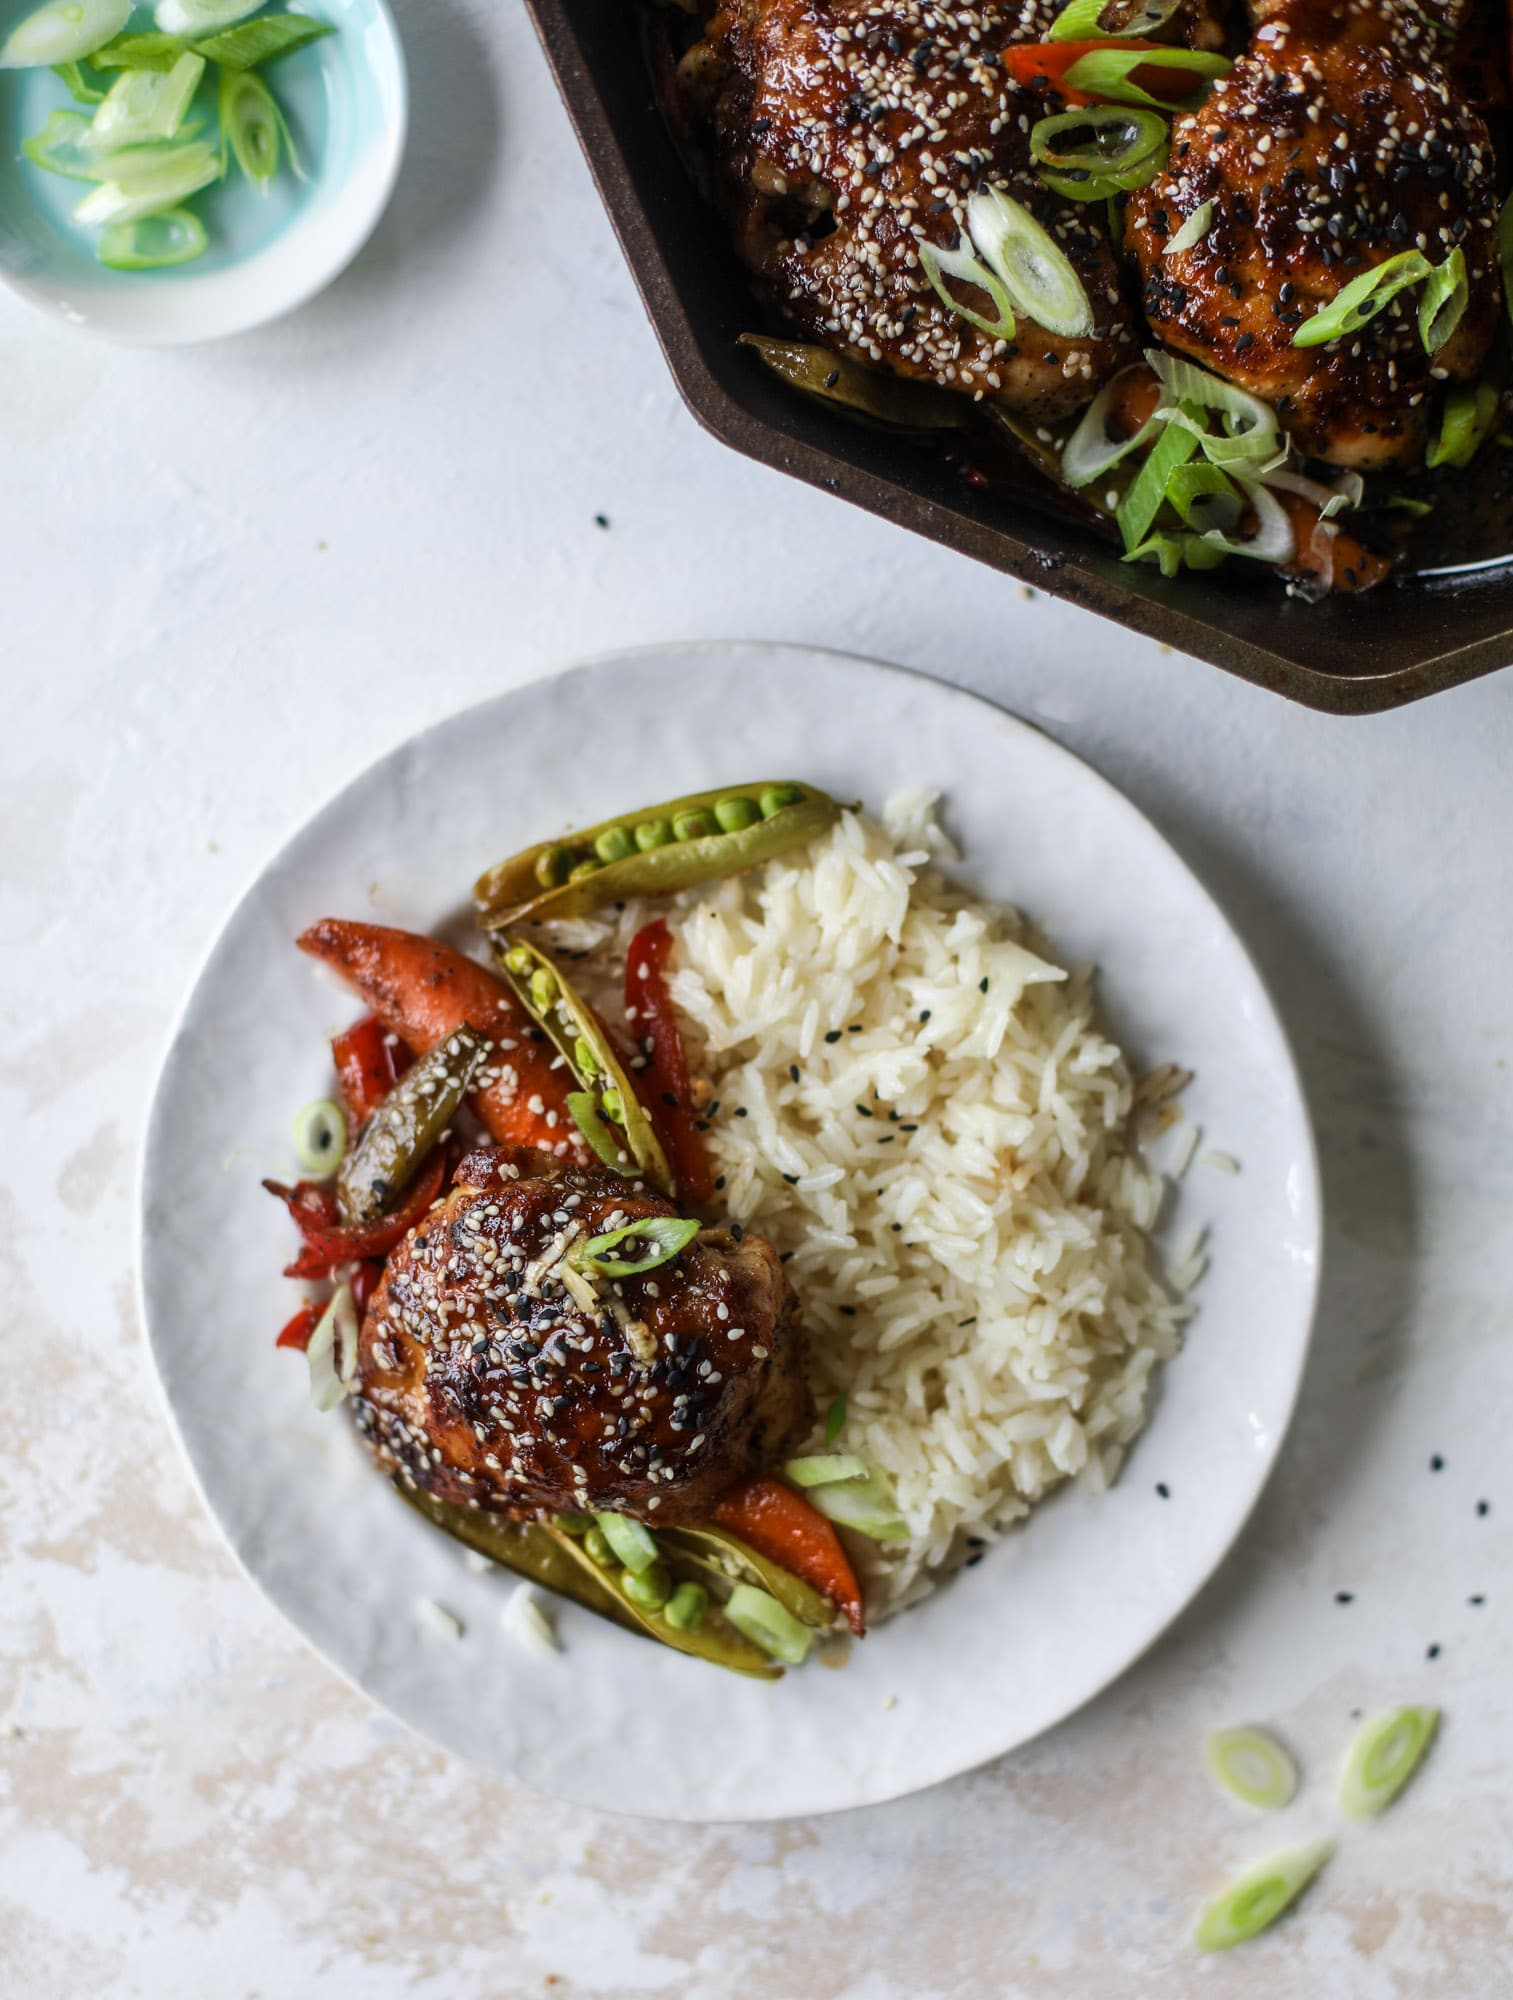 This one pan sesame chicken and veggies is so easy and delicious! It's the perfect weeknight meal that is packed with flavor. The chicken and veggies are great on their own but also wonderful when paired with brown rice or quinoa! I howsweeteats.com #one #pan #sesame #chicken #dinner #easy